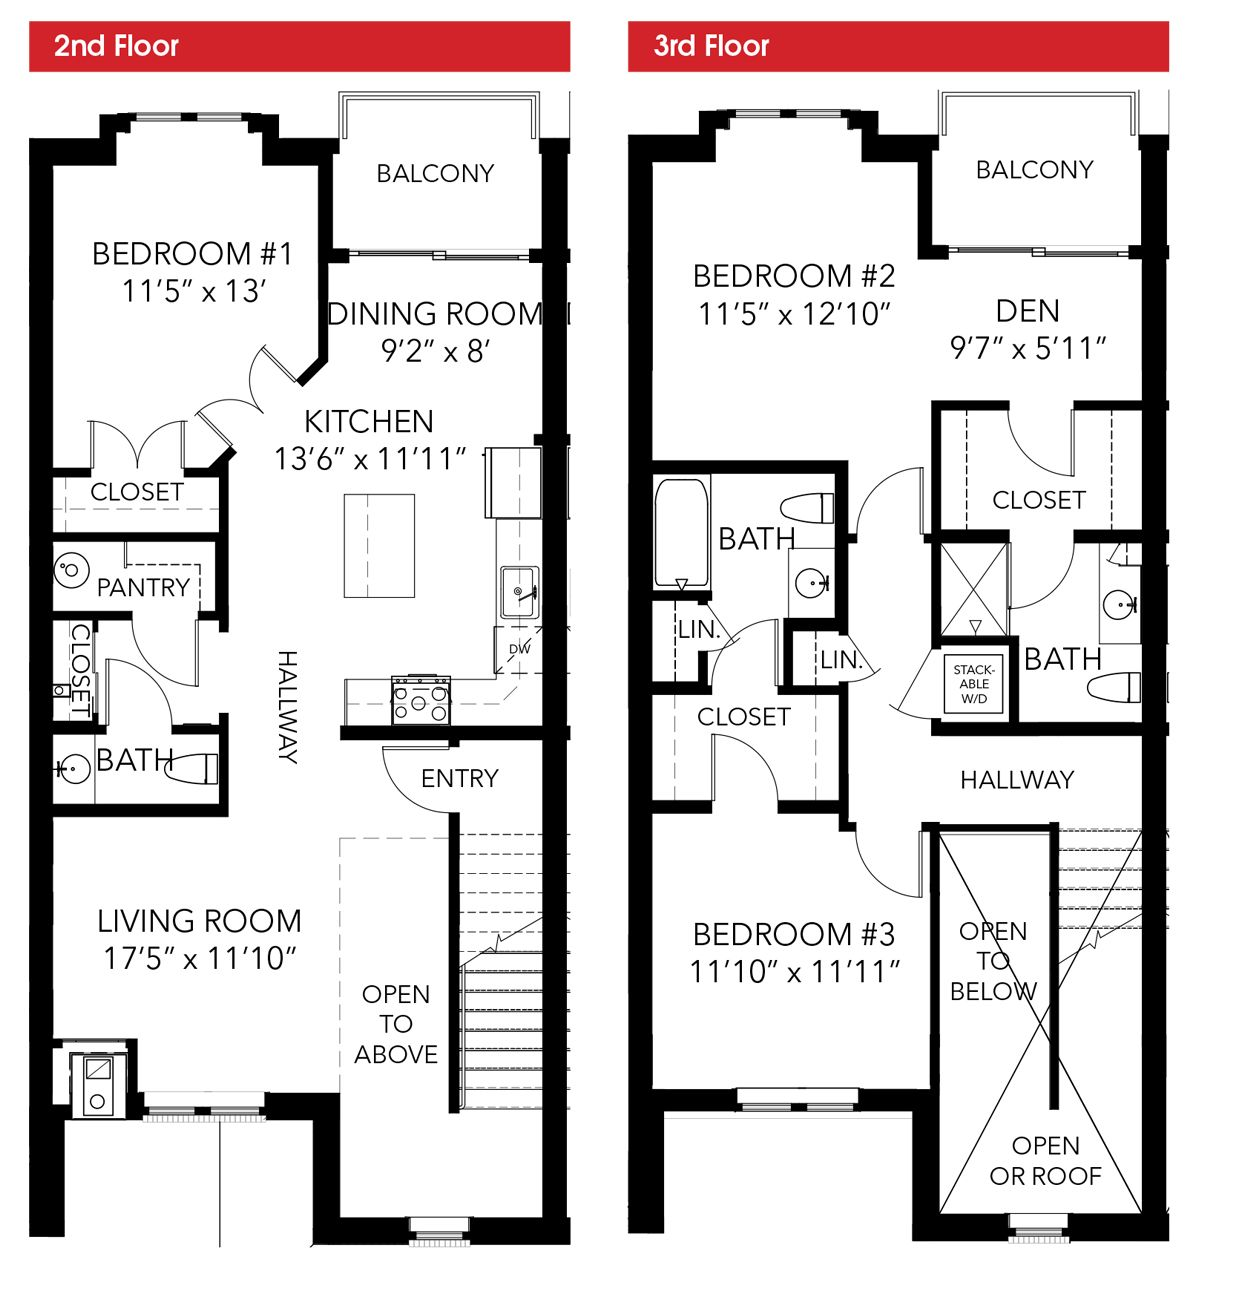 Gorgeous 50 2 story condo floor plans decorating design Two bedroom townhouse plans